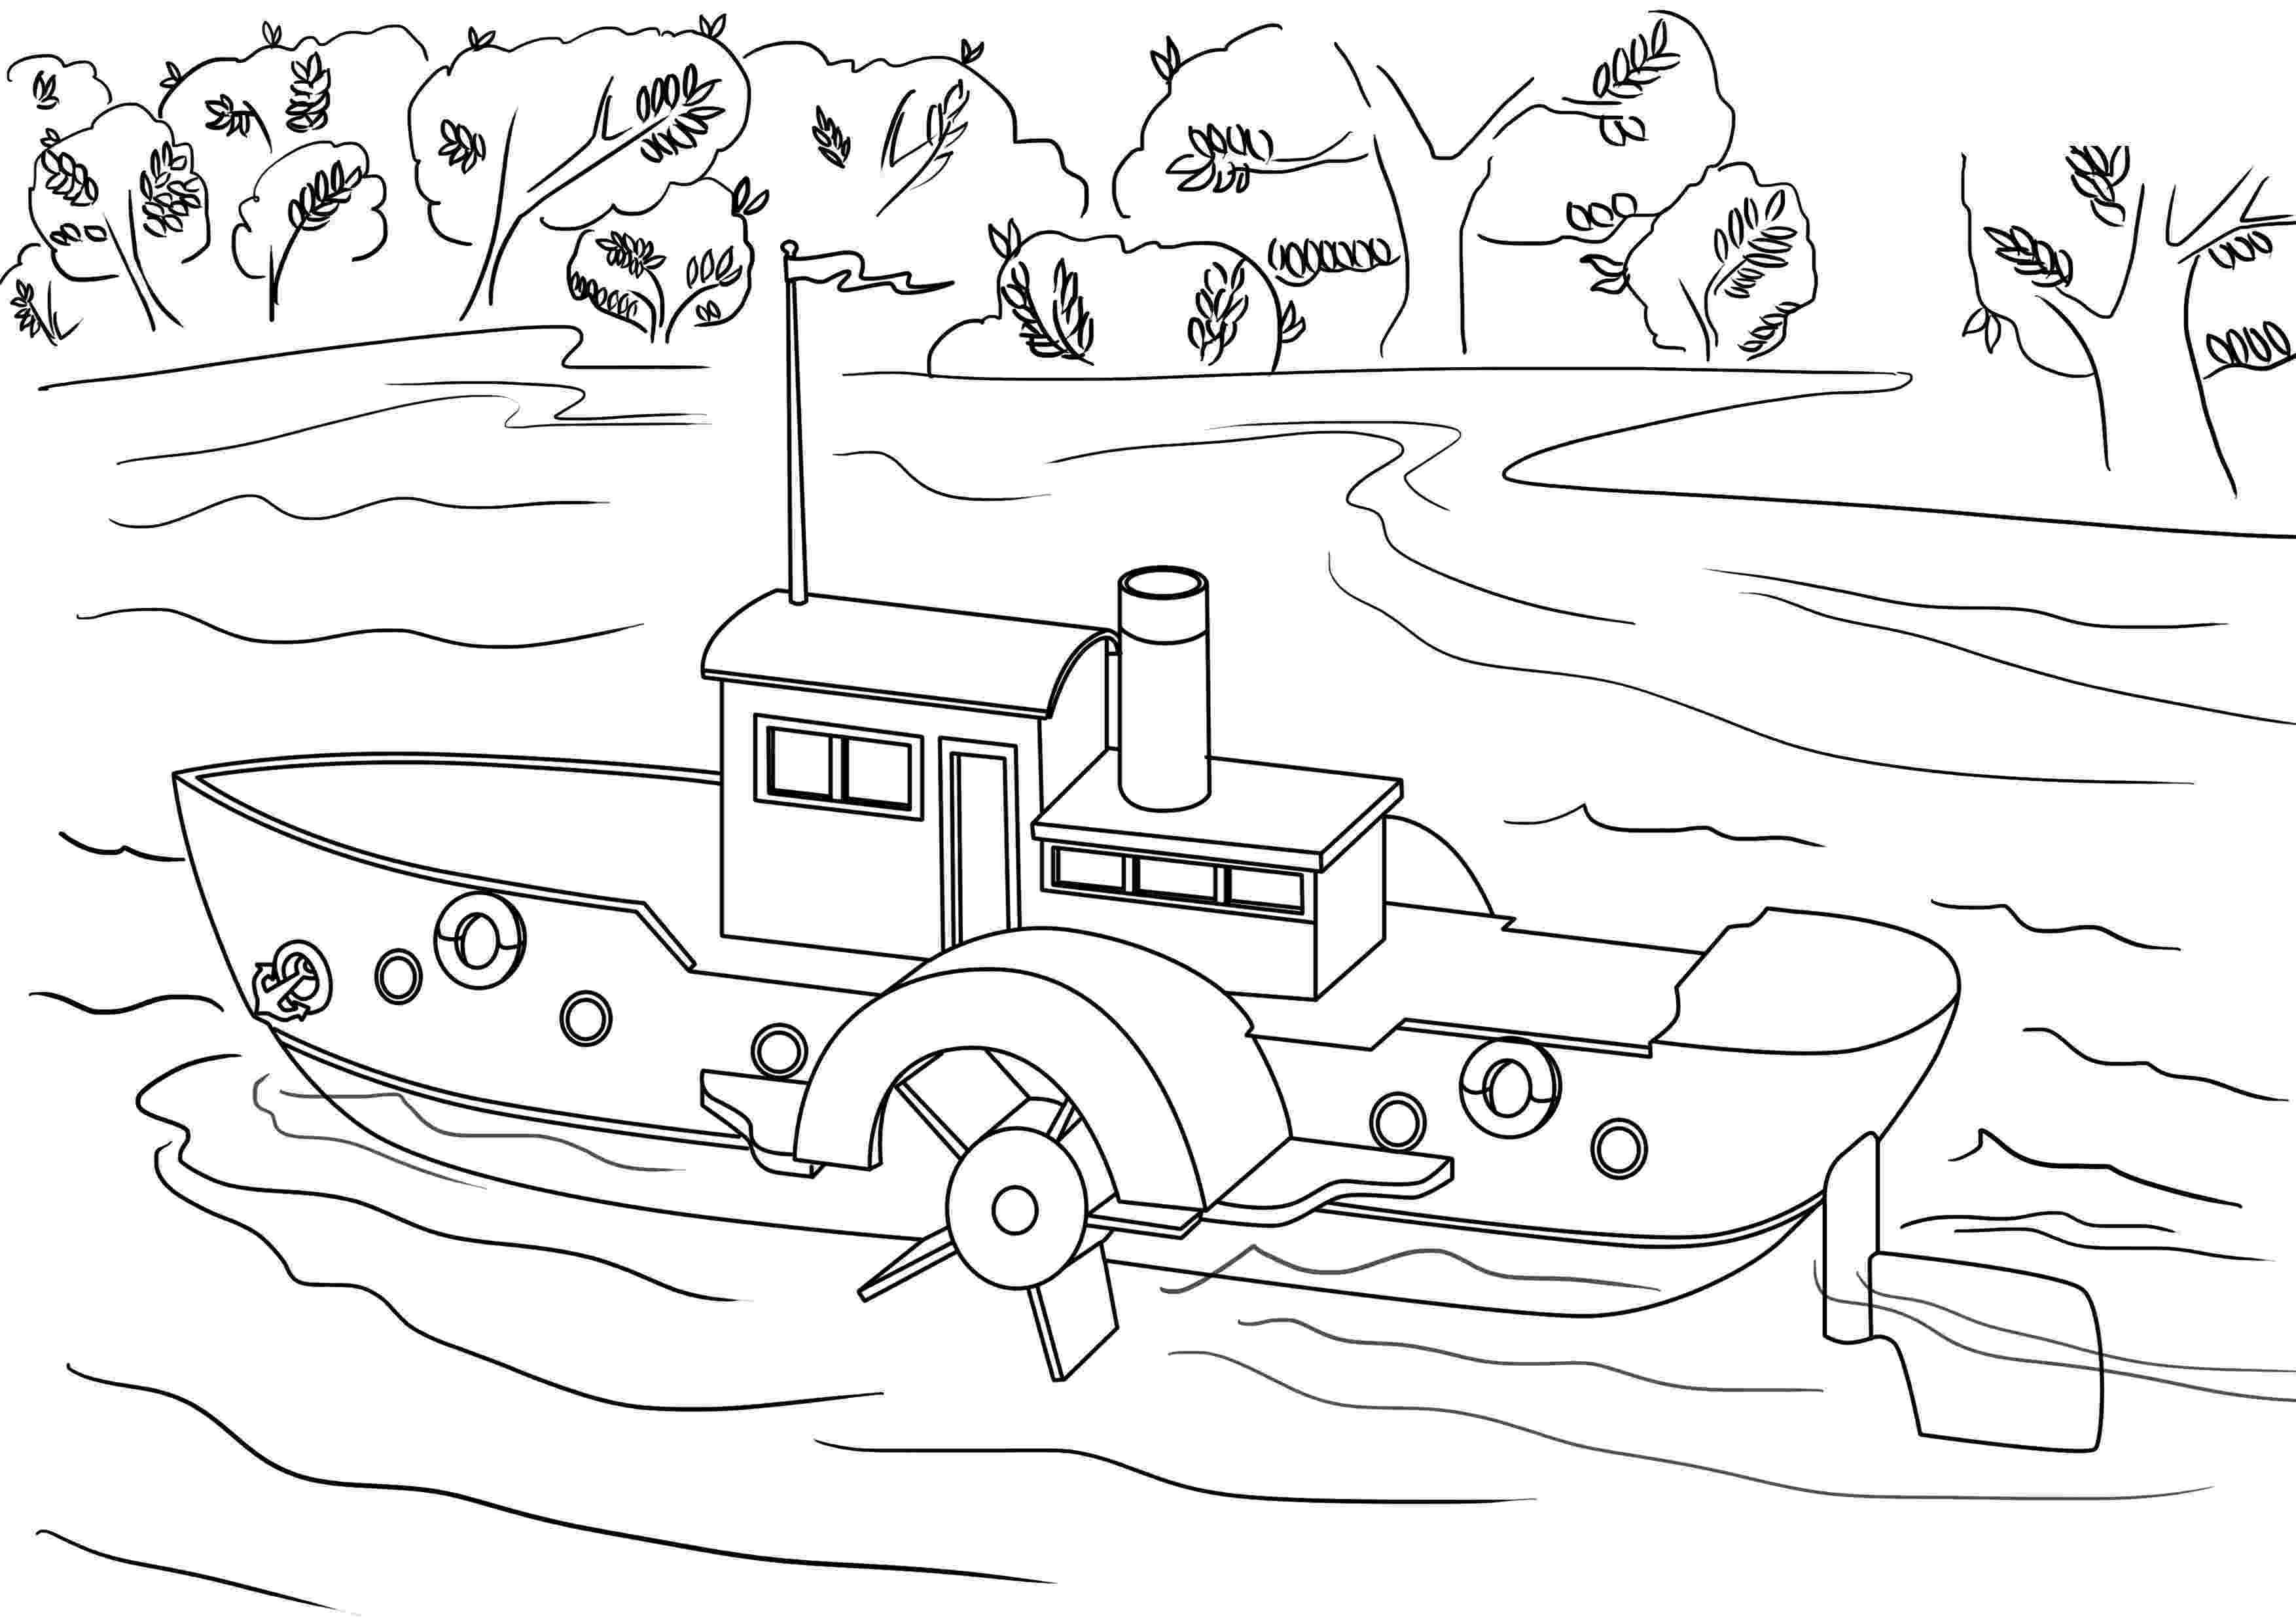 river coloring pages printable river coloring pages to download and print for free coloring river printable pages